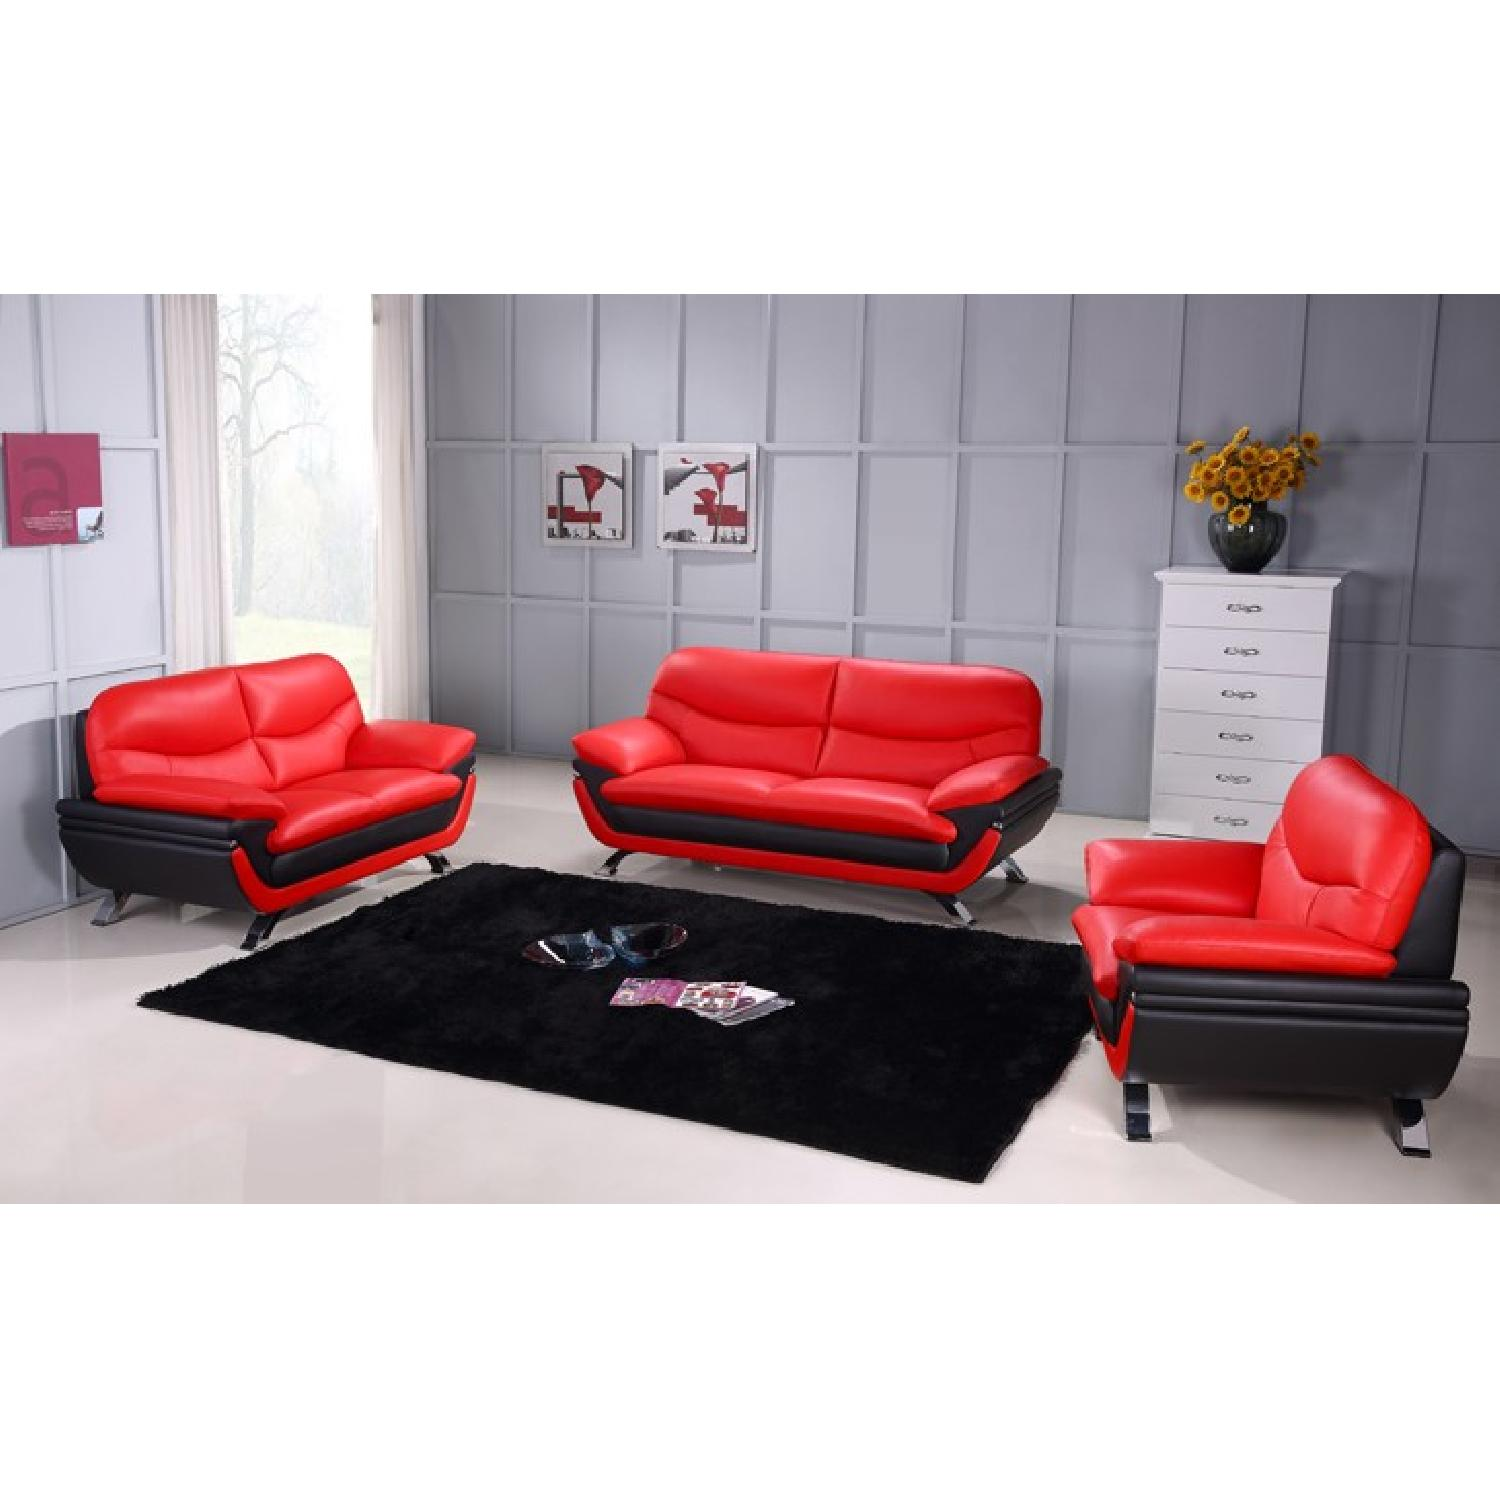 Modern Sofa in 2-Tone Red-Black Top Grain Leather w/ Gently Sloped  Armrests& Chrome Legs